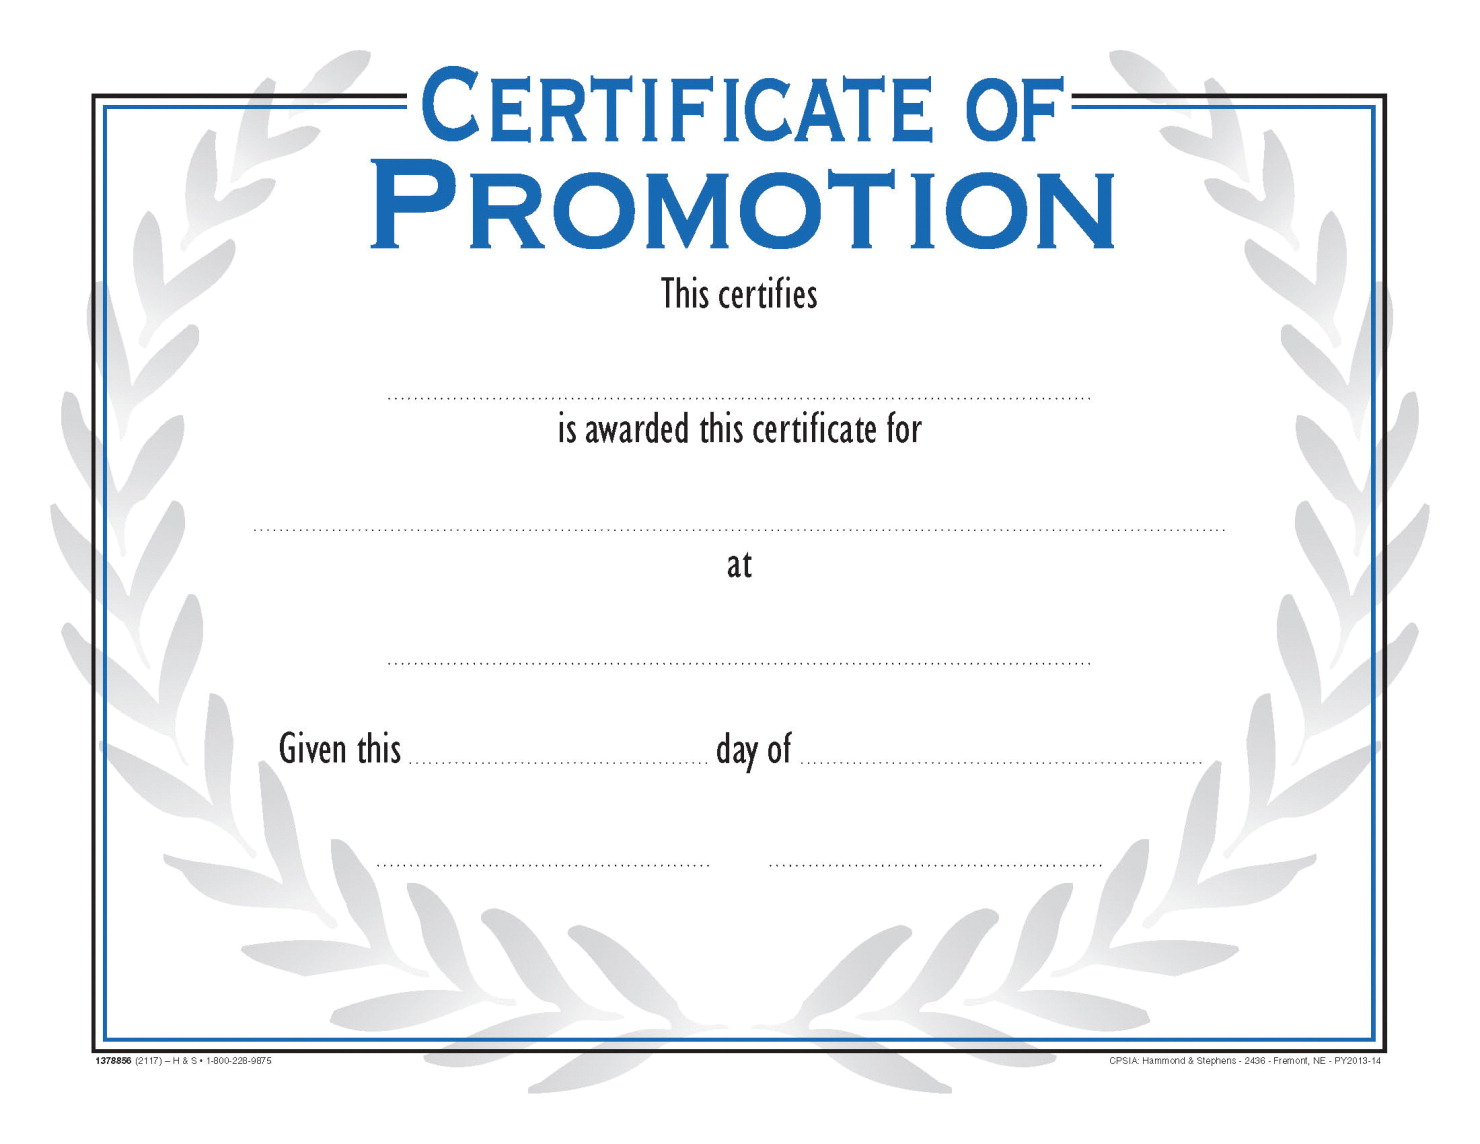 School smart recognition nuline award school specialty for Promotion certificate template